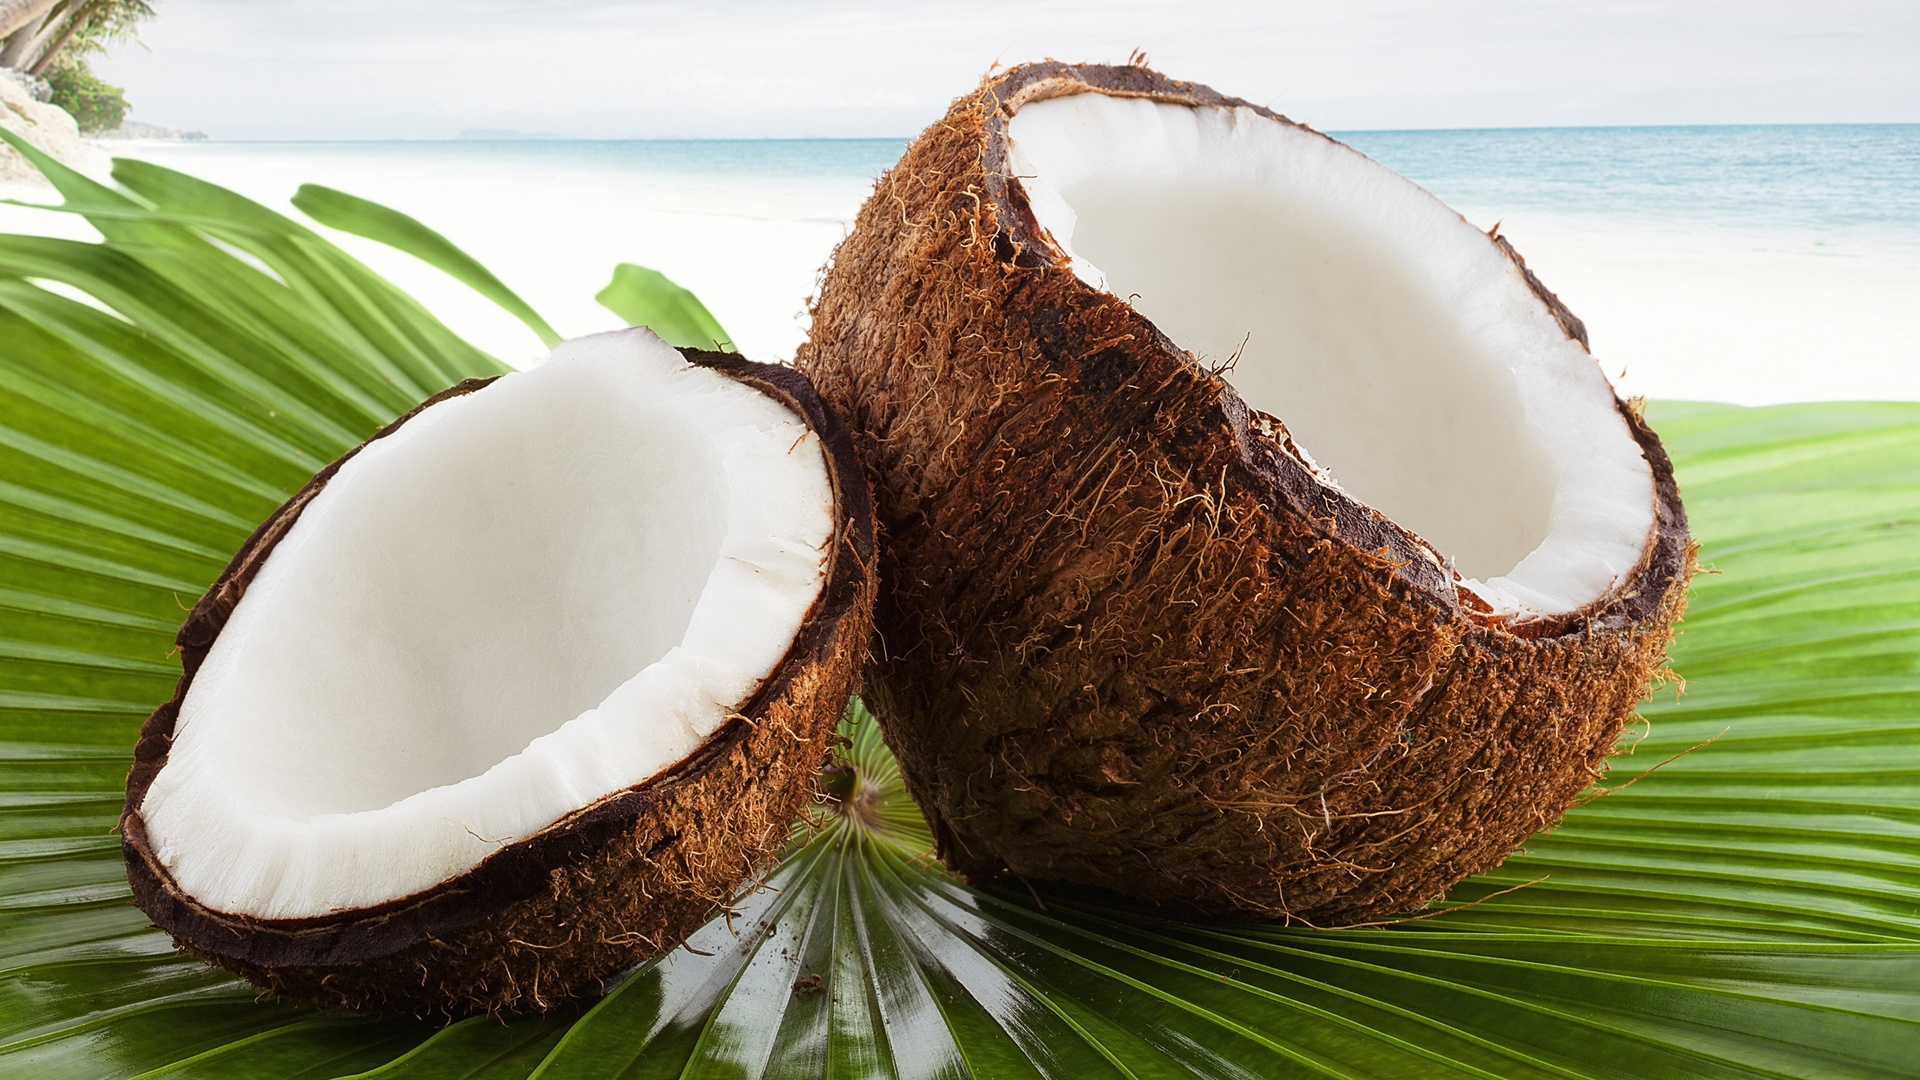 Coconuts By The Sea hd background